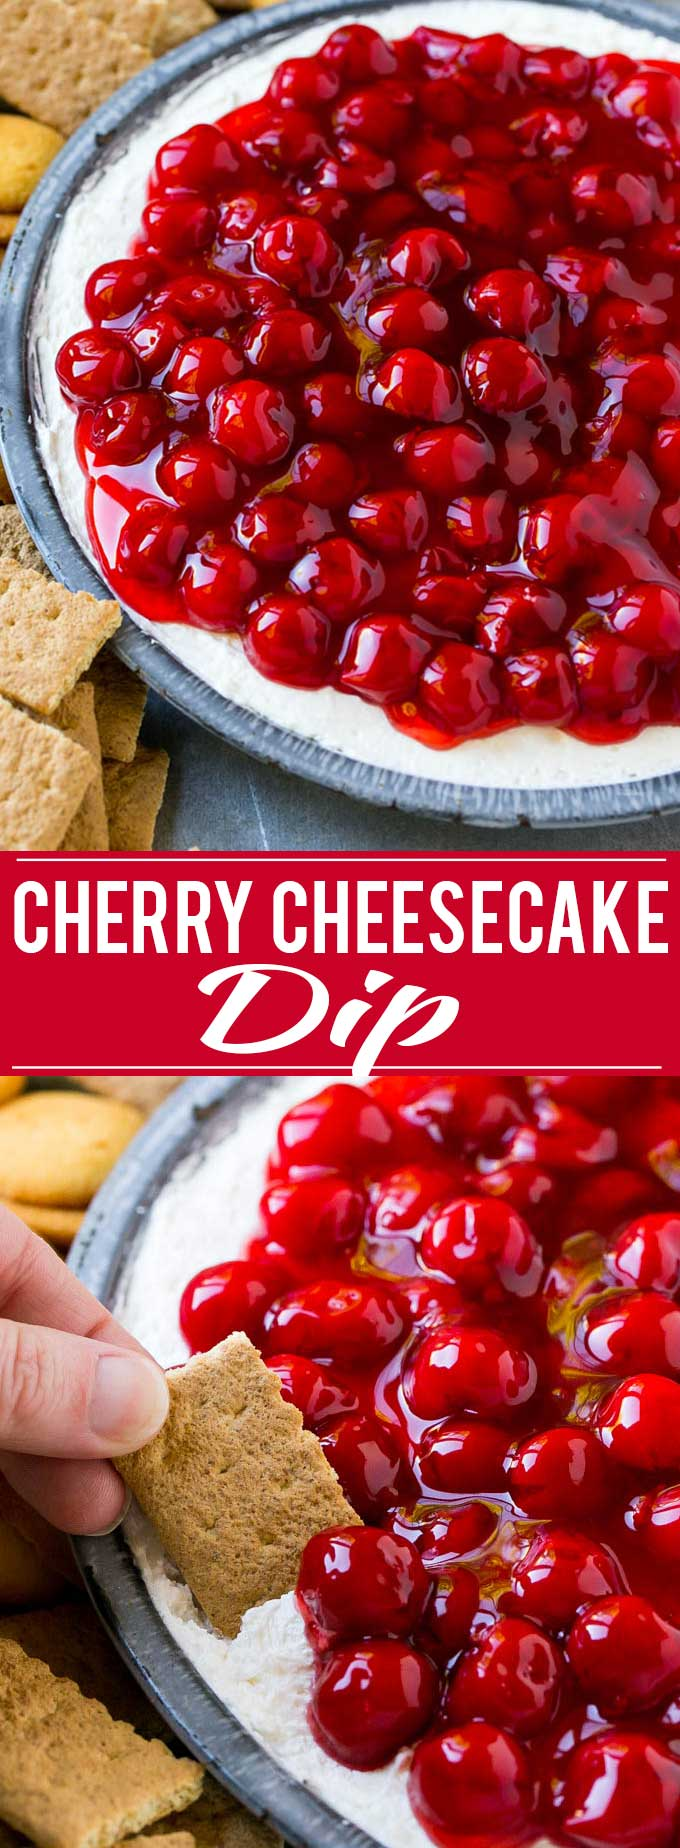 Cherry Cheesecake Dip Recipe | Dessert Dip | Cherry Cheesecake | Cheesecake Dip